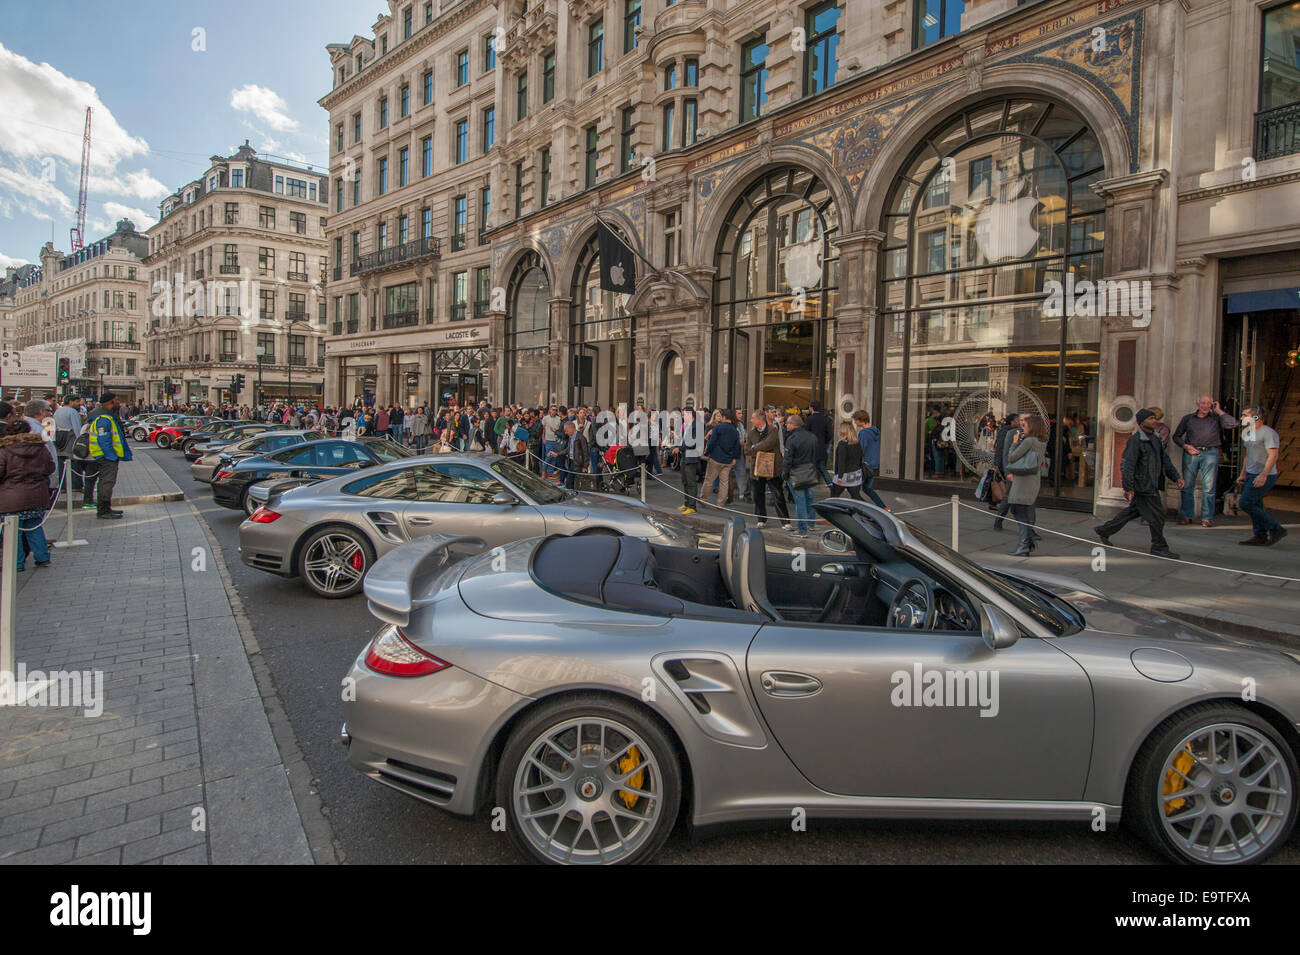 Porsche Cars Line Up On The World Famous West End Shopping Street